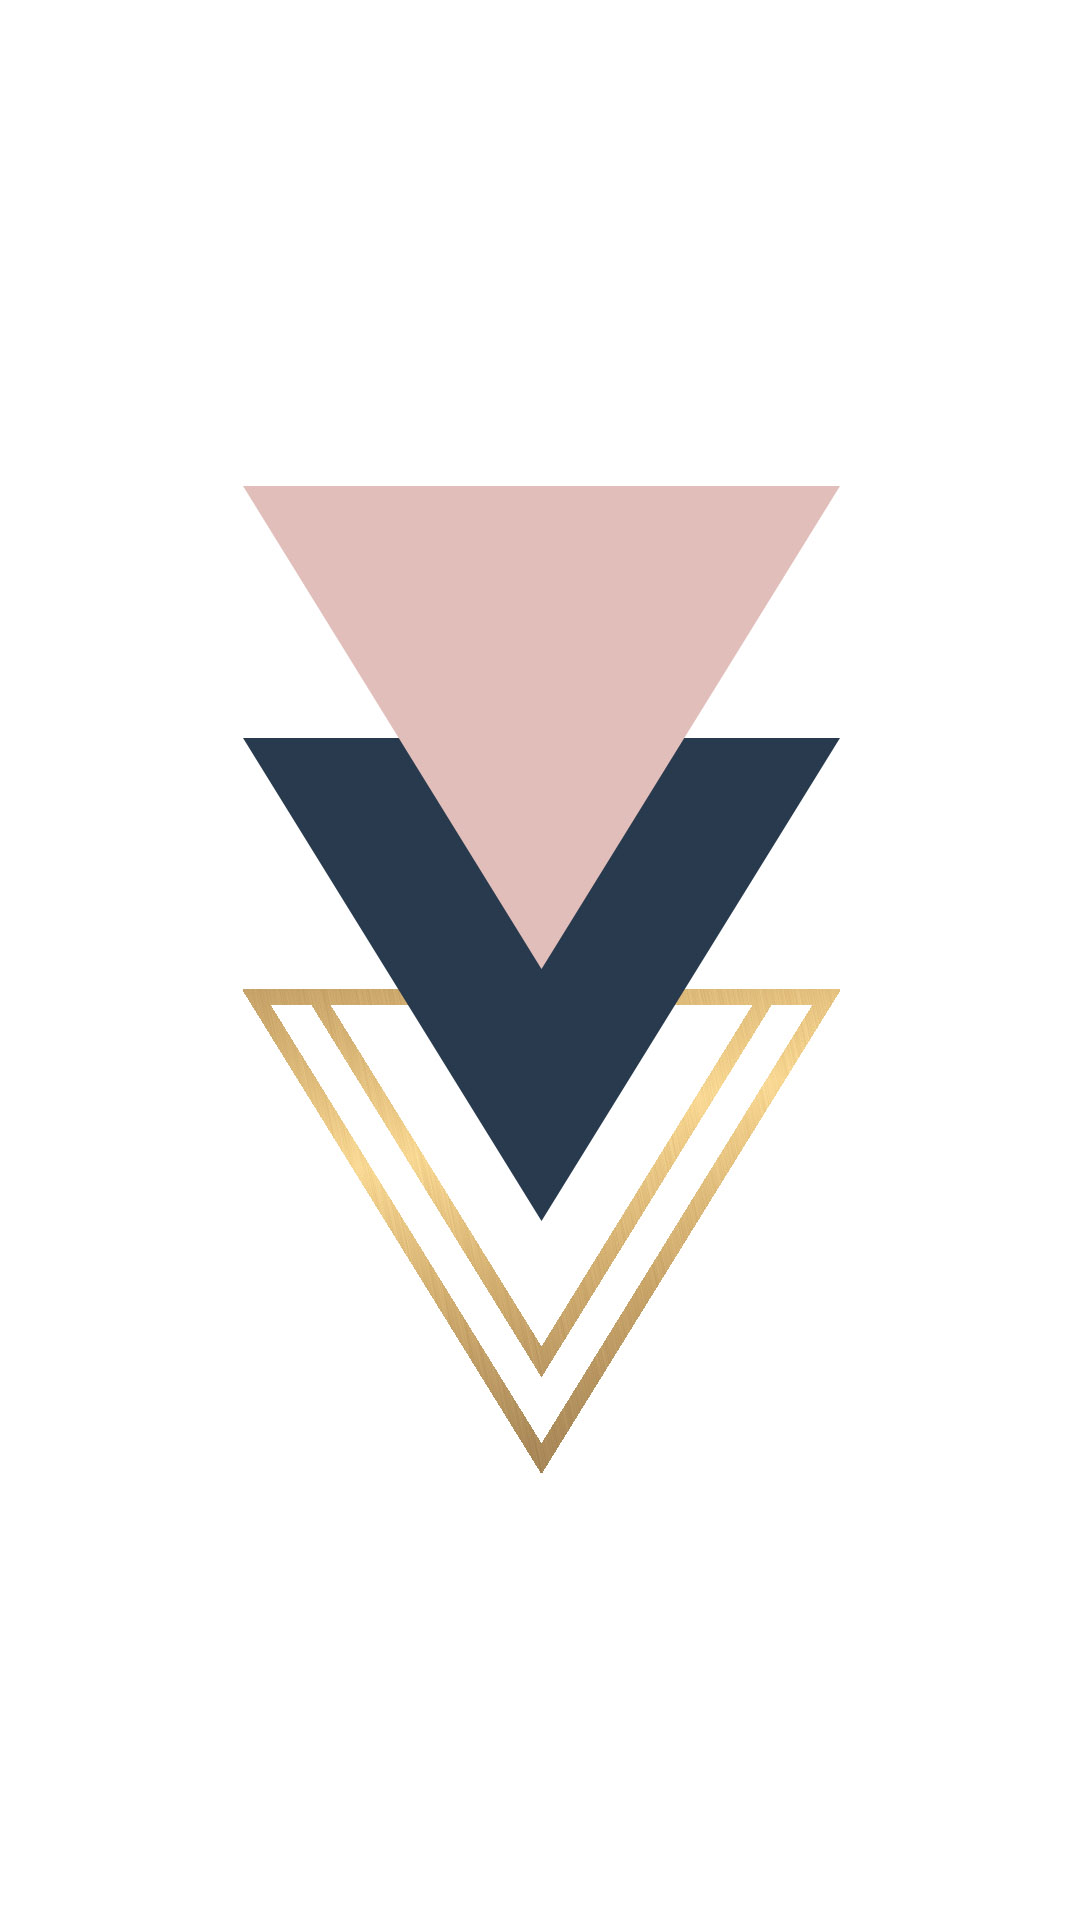 Blush-Navy-gold-foil-triangle-geo-shapes-you-can-download-for-free-on-the-blog-For-any-de-wallpaper-wpc5802944